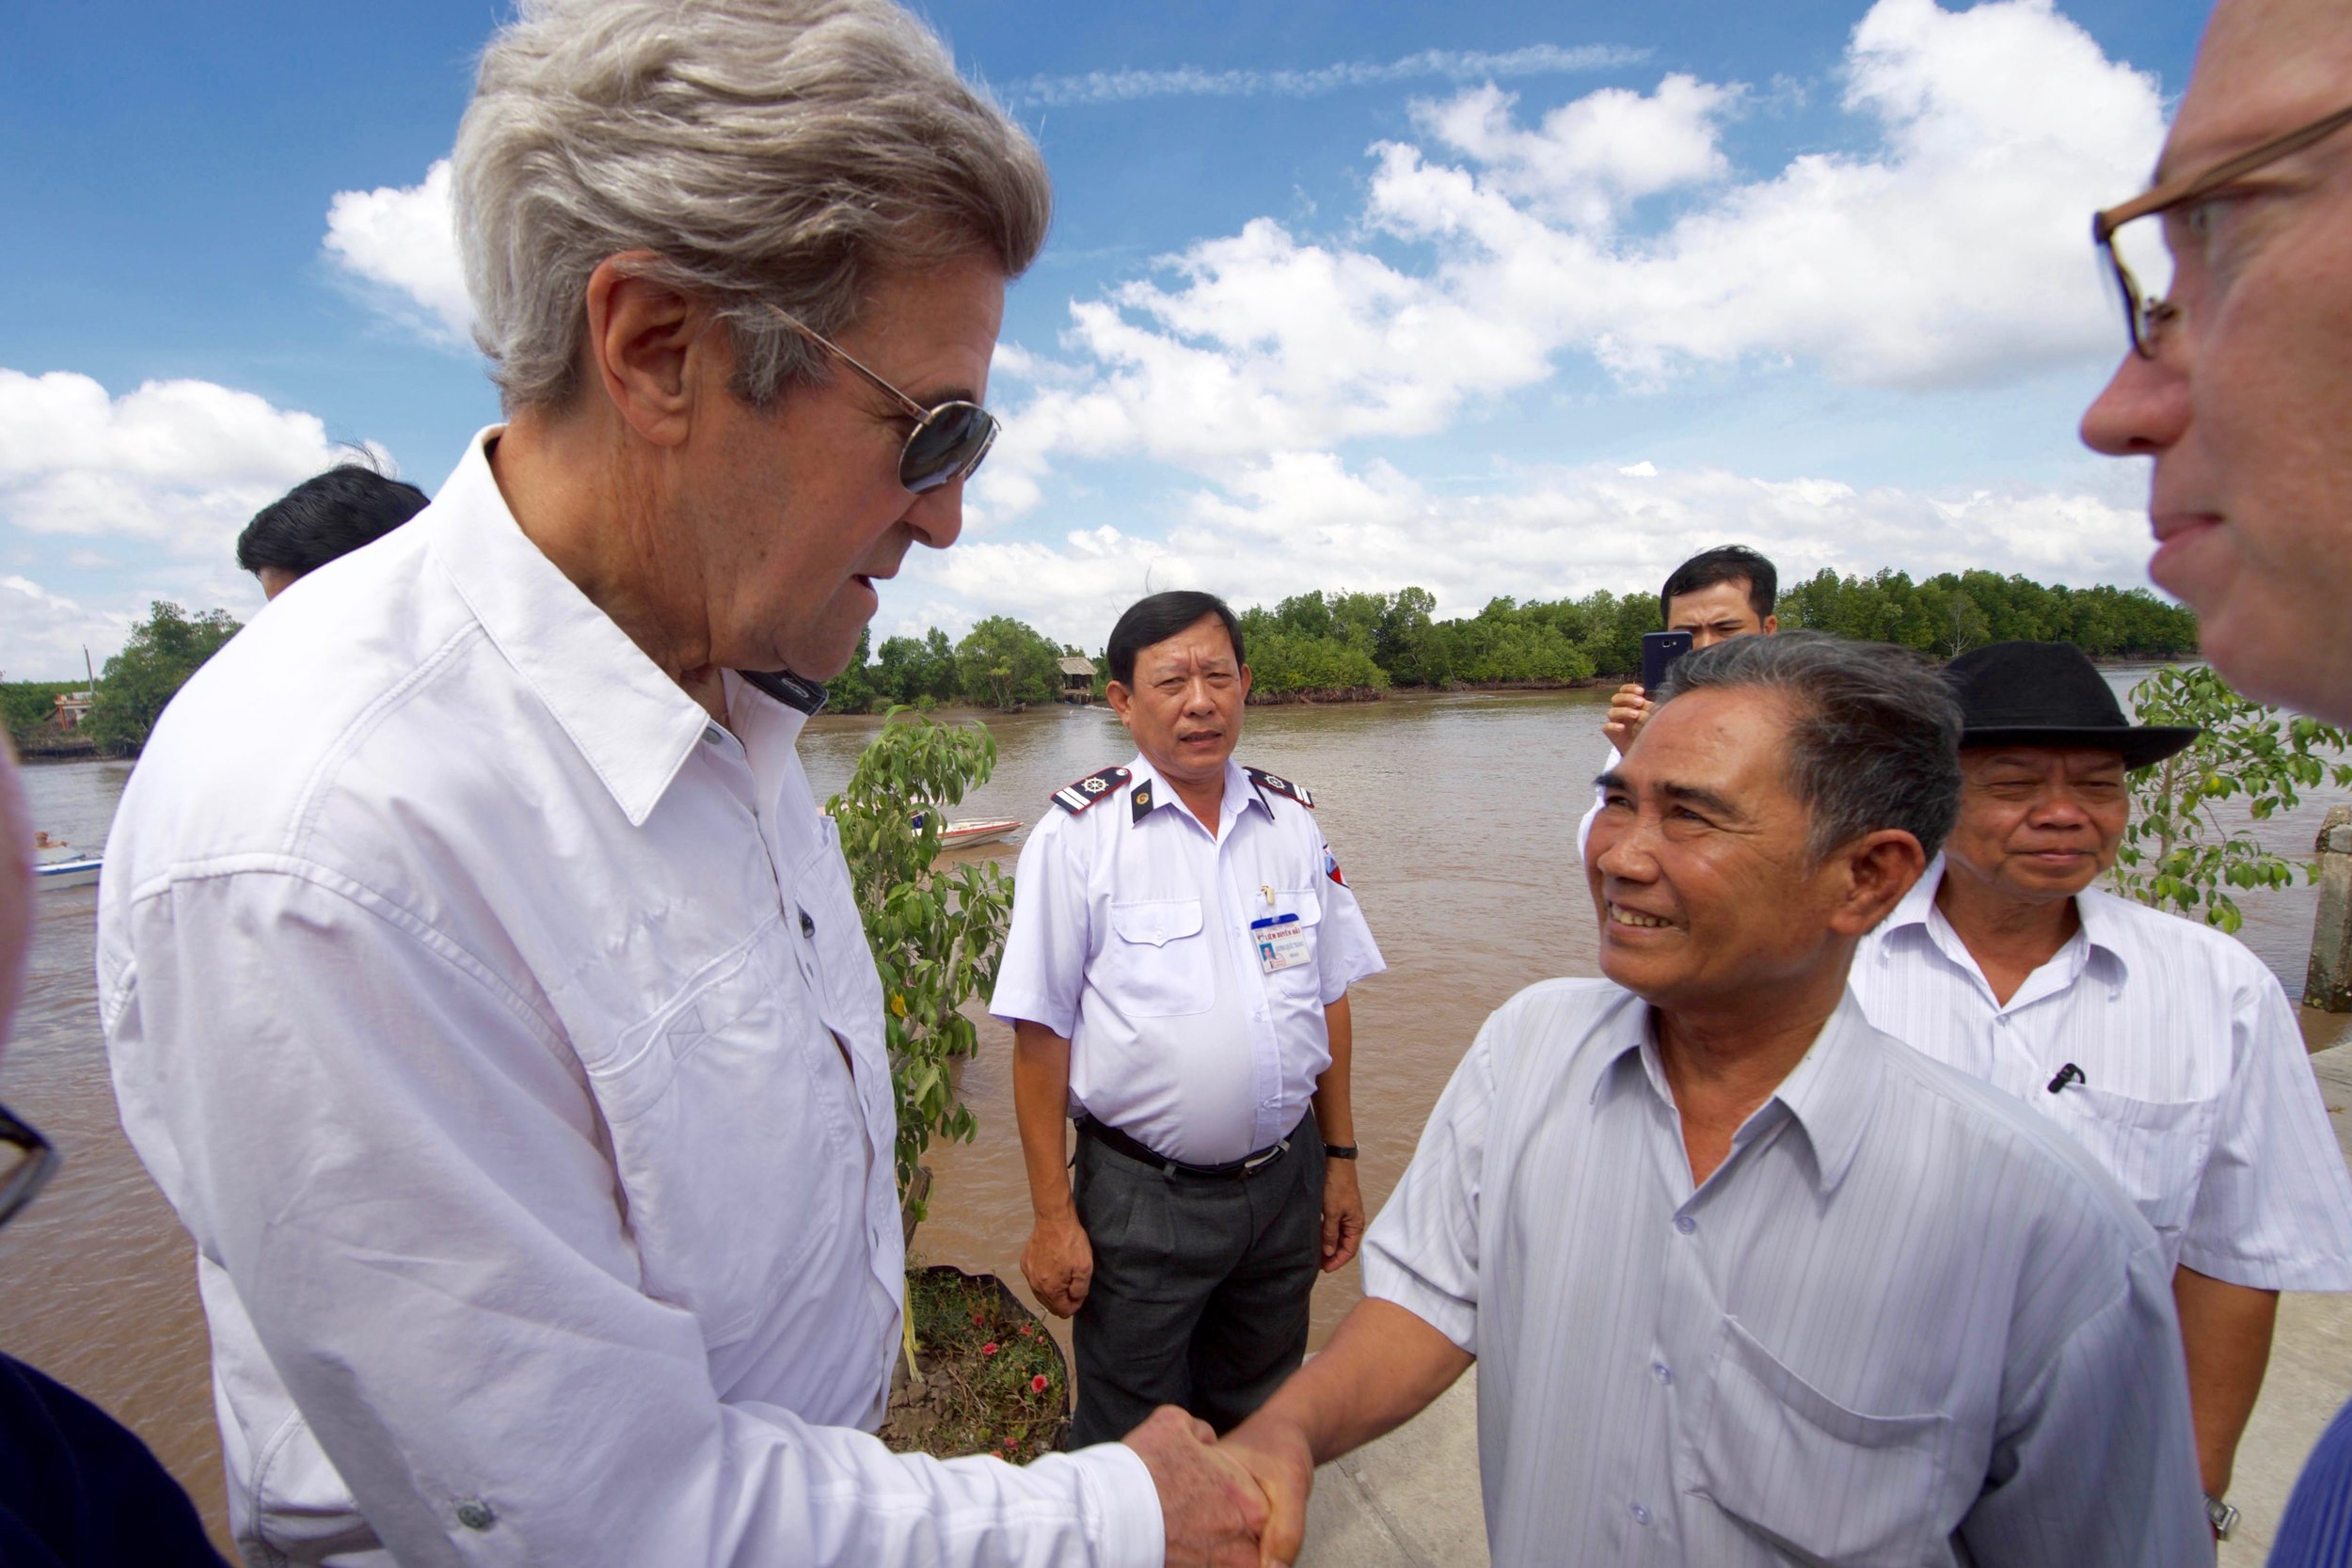 Secretary Kerry meets a former Viet Cong soldier who tells him the truth about that 1969 battle.